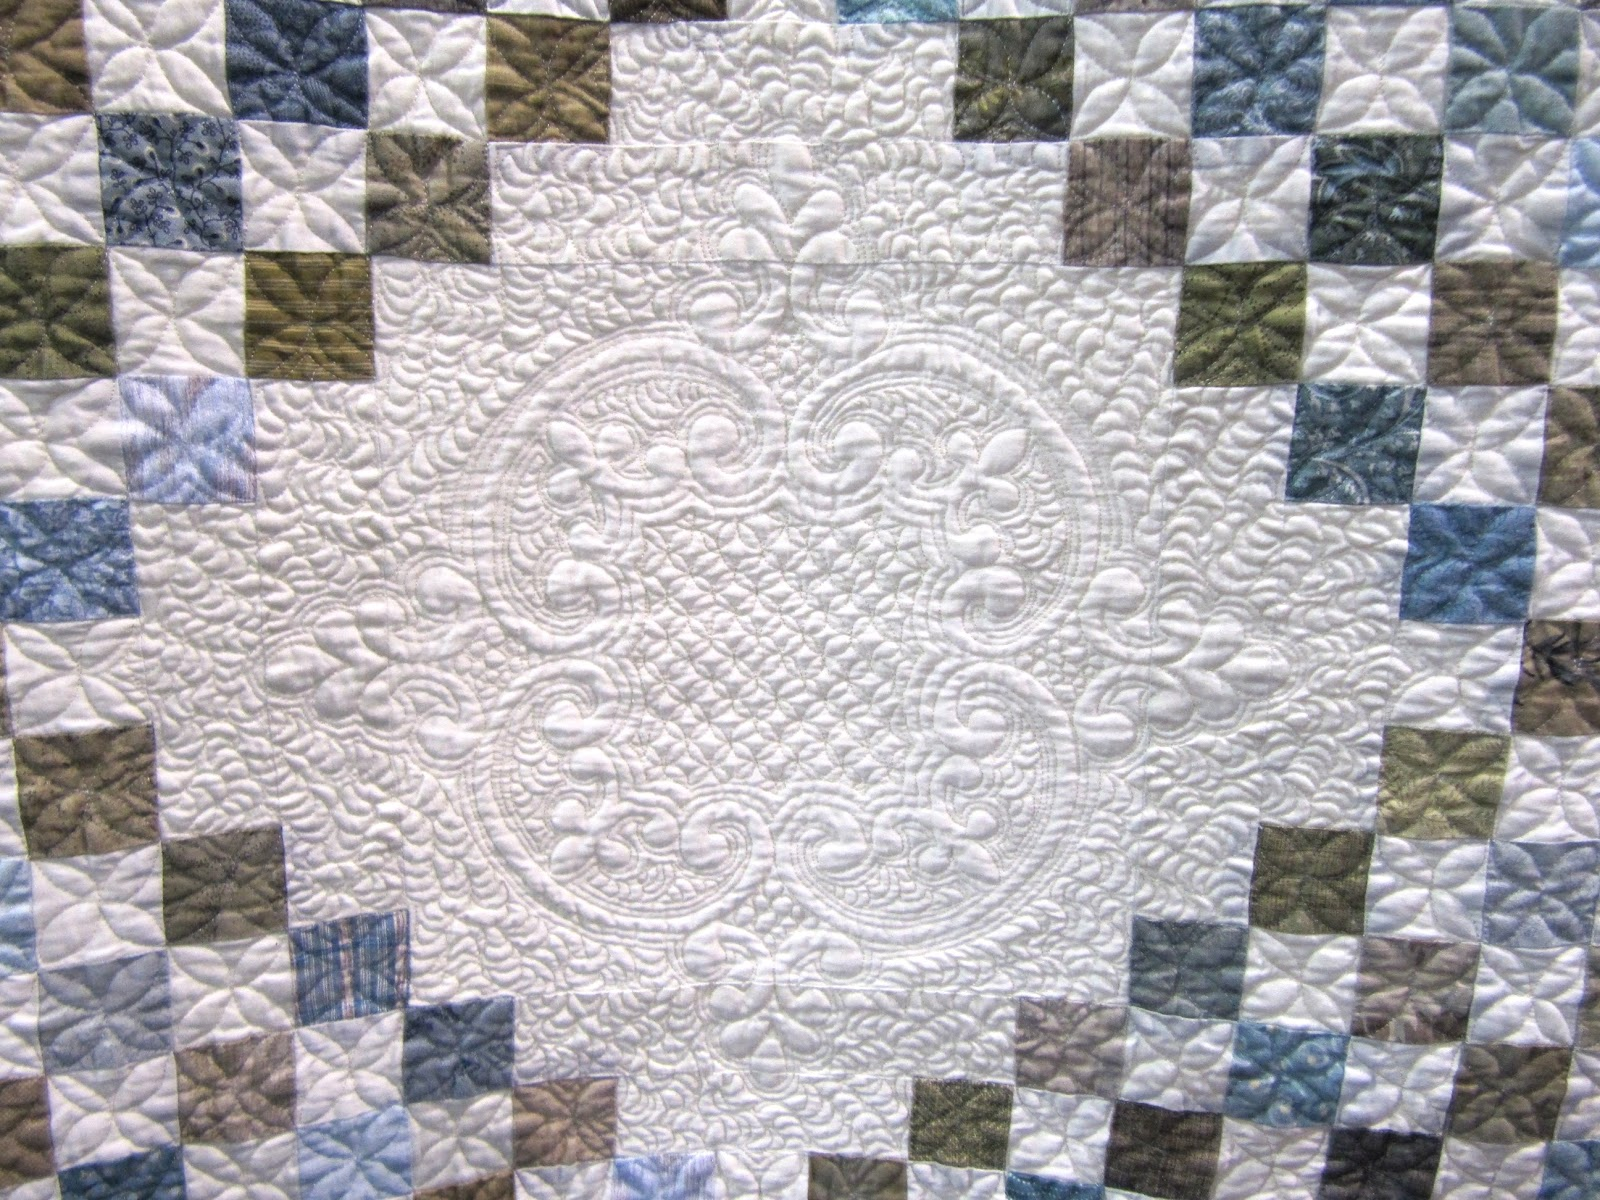 Sew Many Ways...: Mqx Quilt Show Pictures... : mqx quilt show - Adamdwight.com